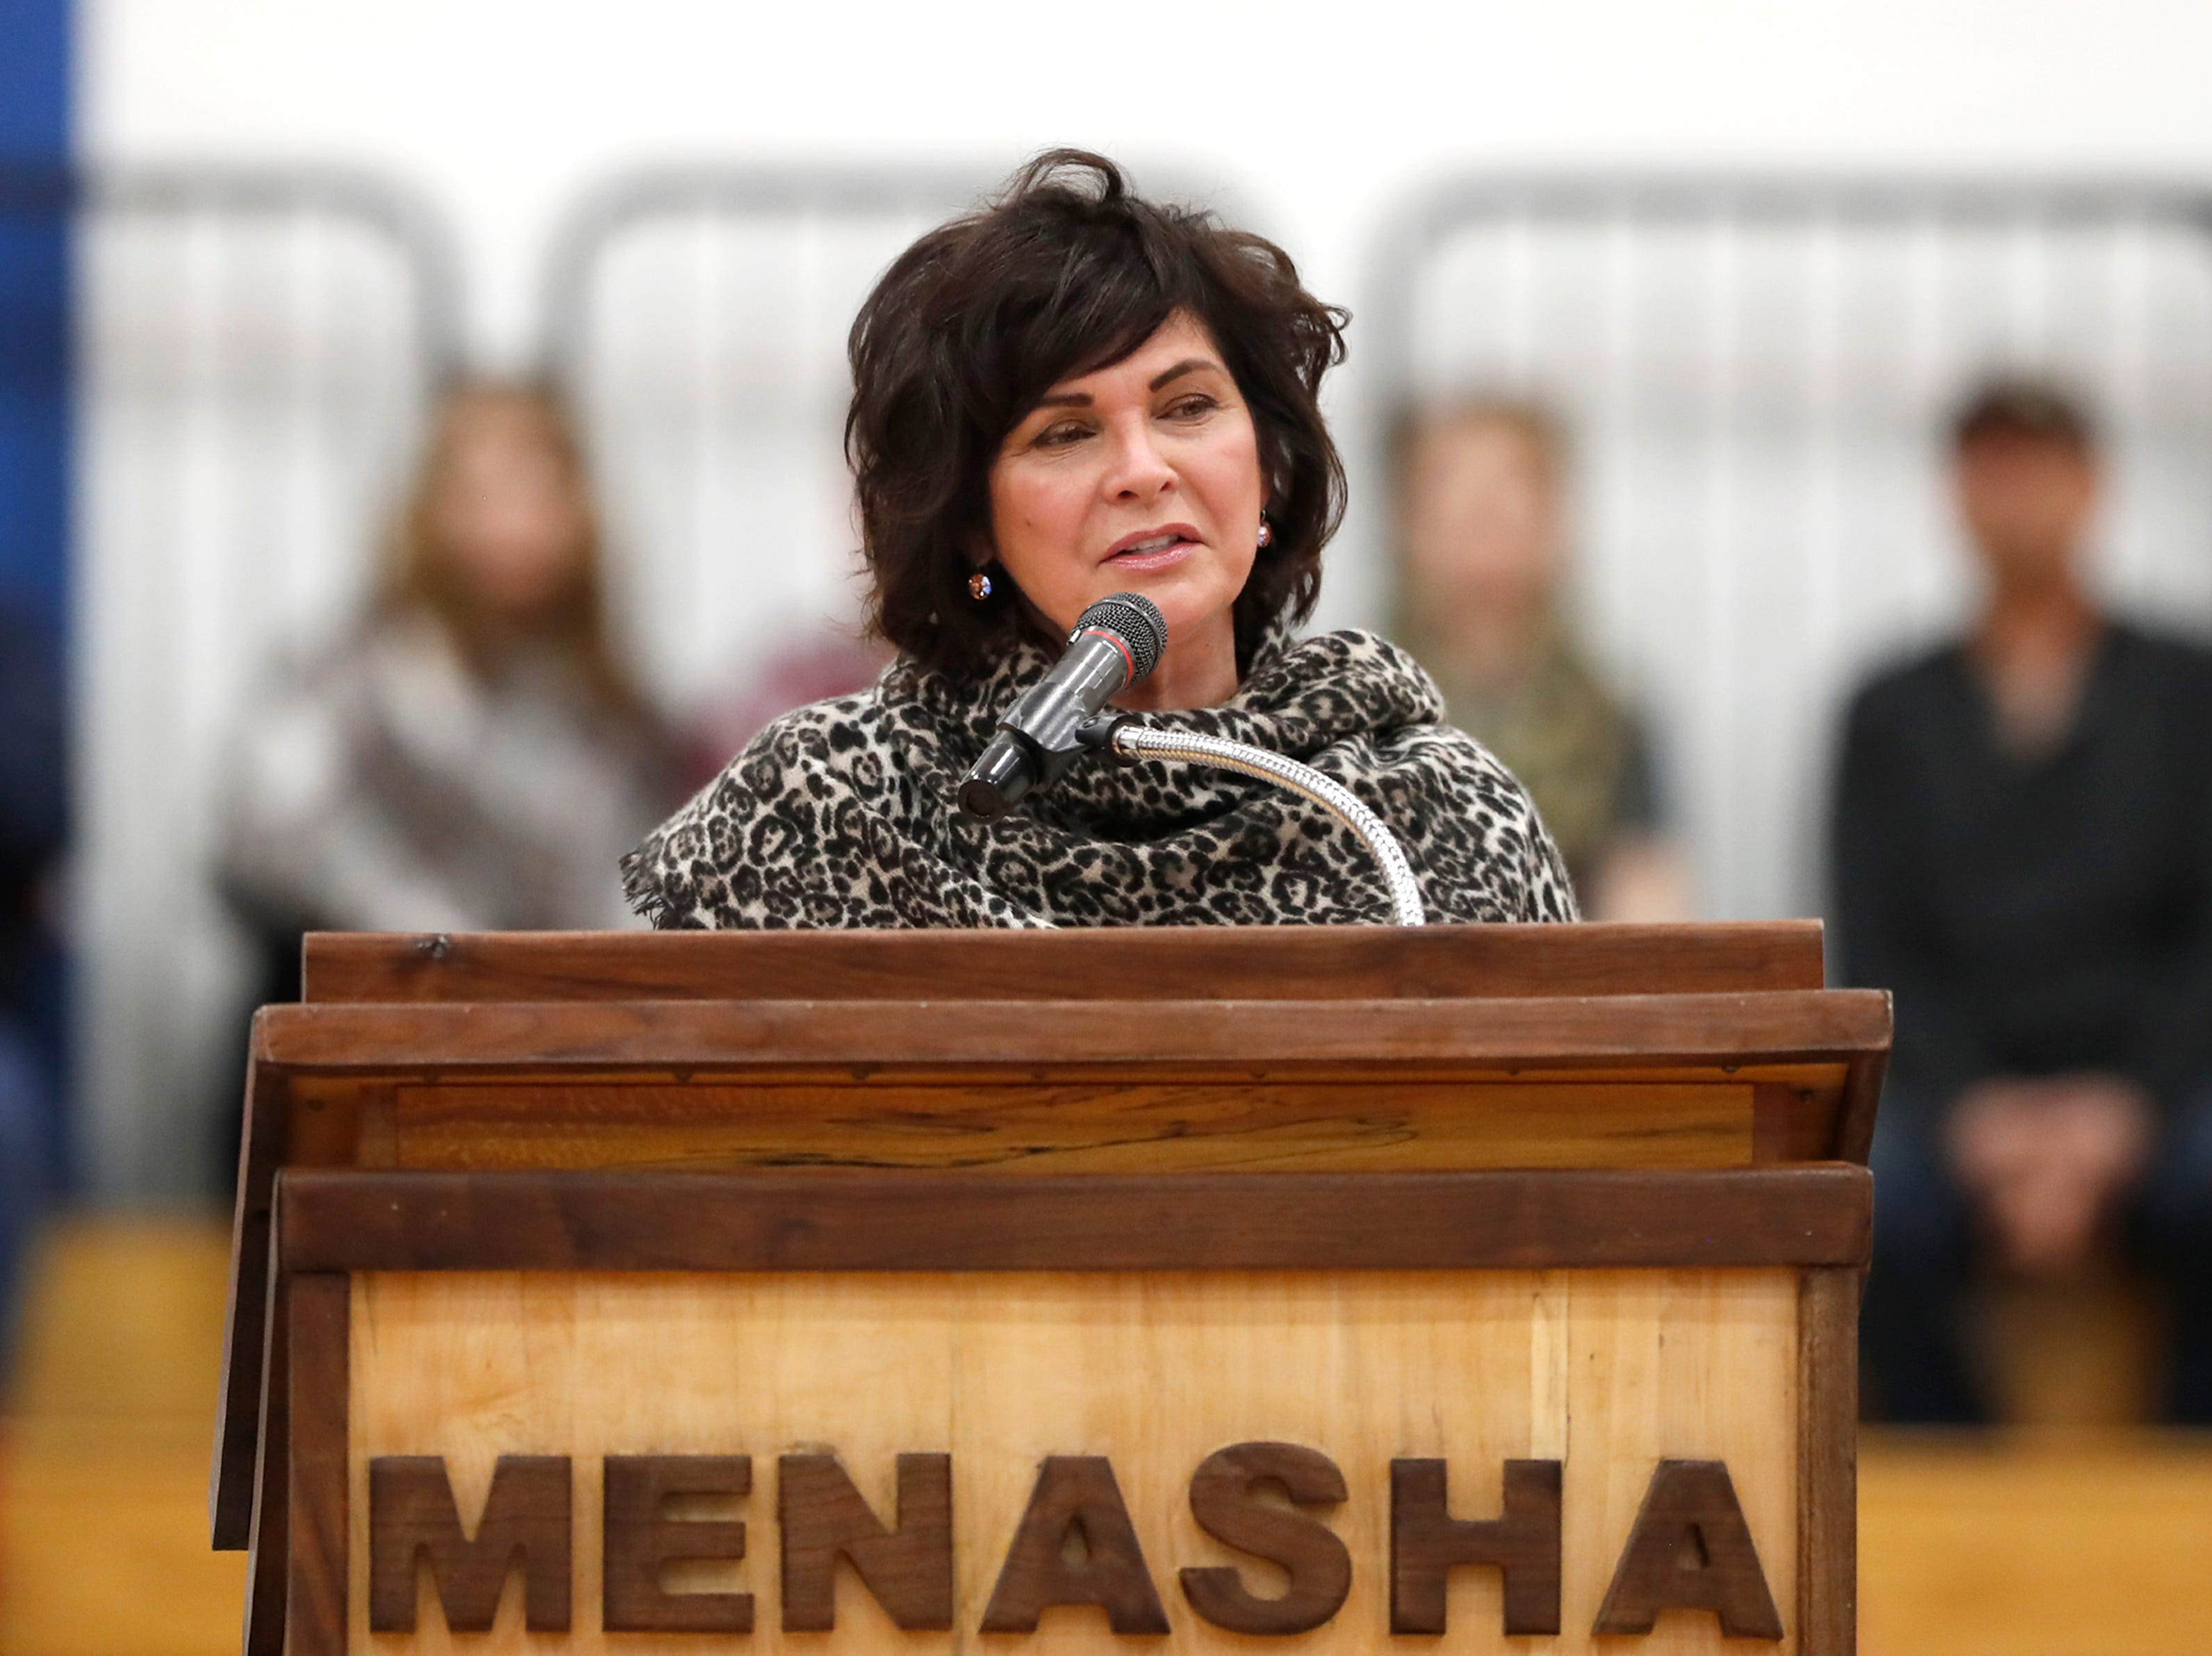 Janine Sijan gives a speech during the Old Glory Honor Flight-Return to Nam welcome home Saturday, March 9, 2019, at Menasha High School in Menasha, Wis. Veterans were greeted by friends, family, the Menasha High School band, and the 484th Army Band.Danny Damiani/USA TODAY NETWORK-Wisconsin